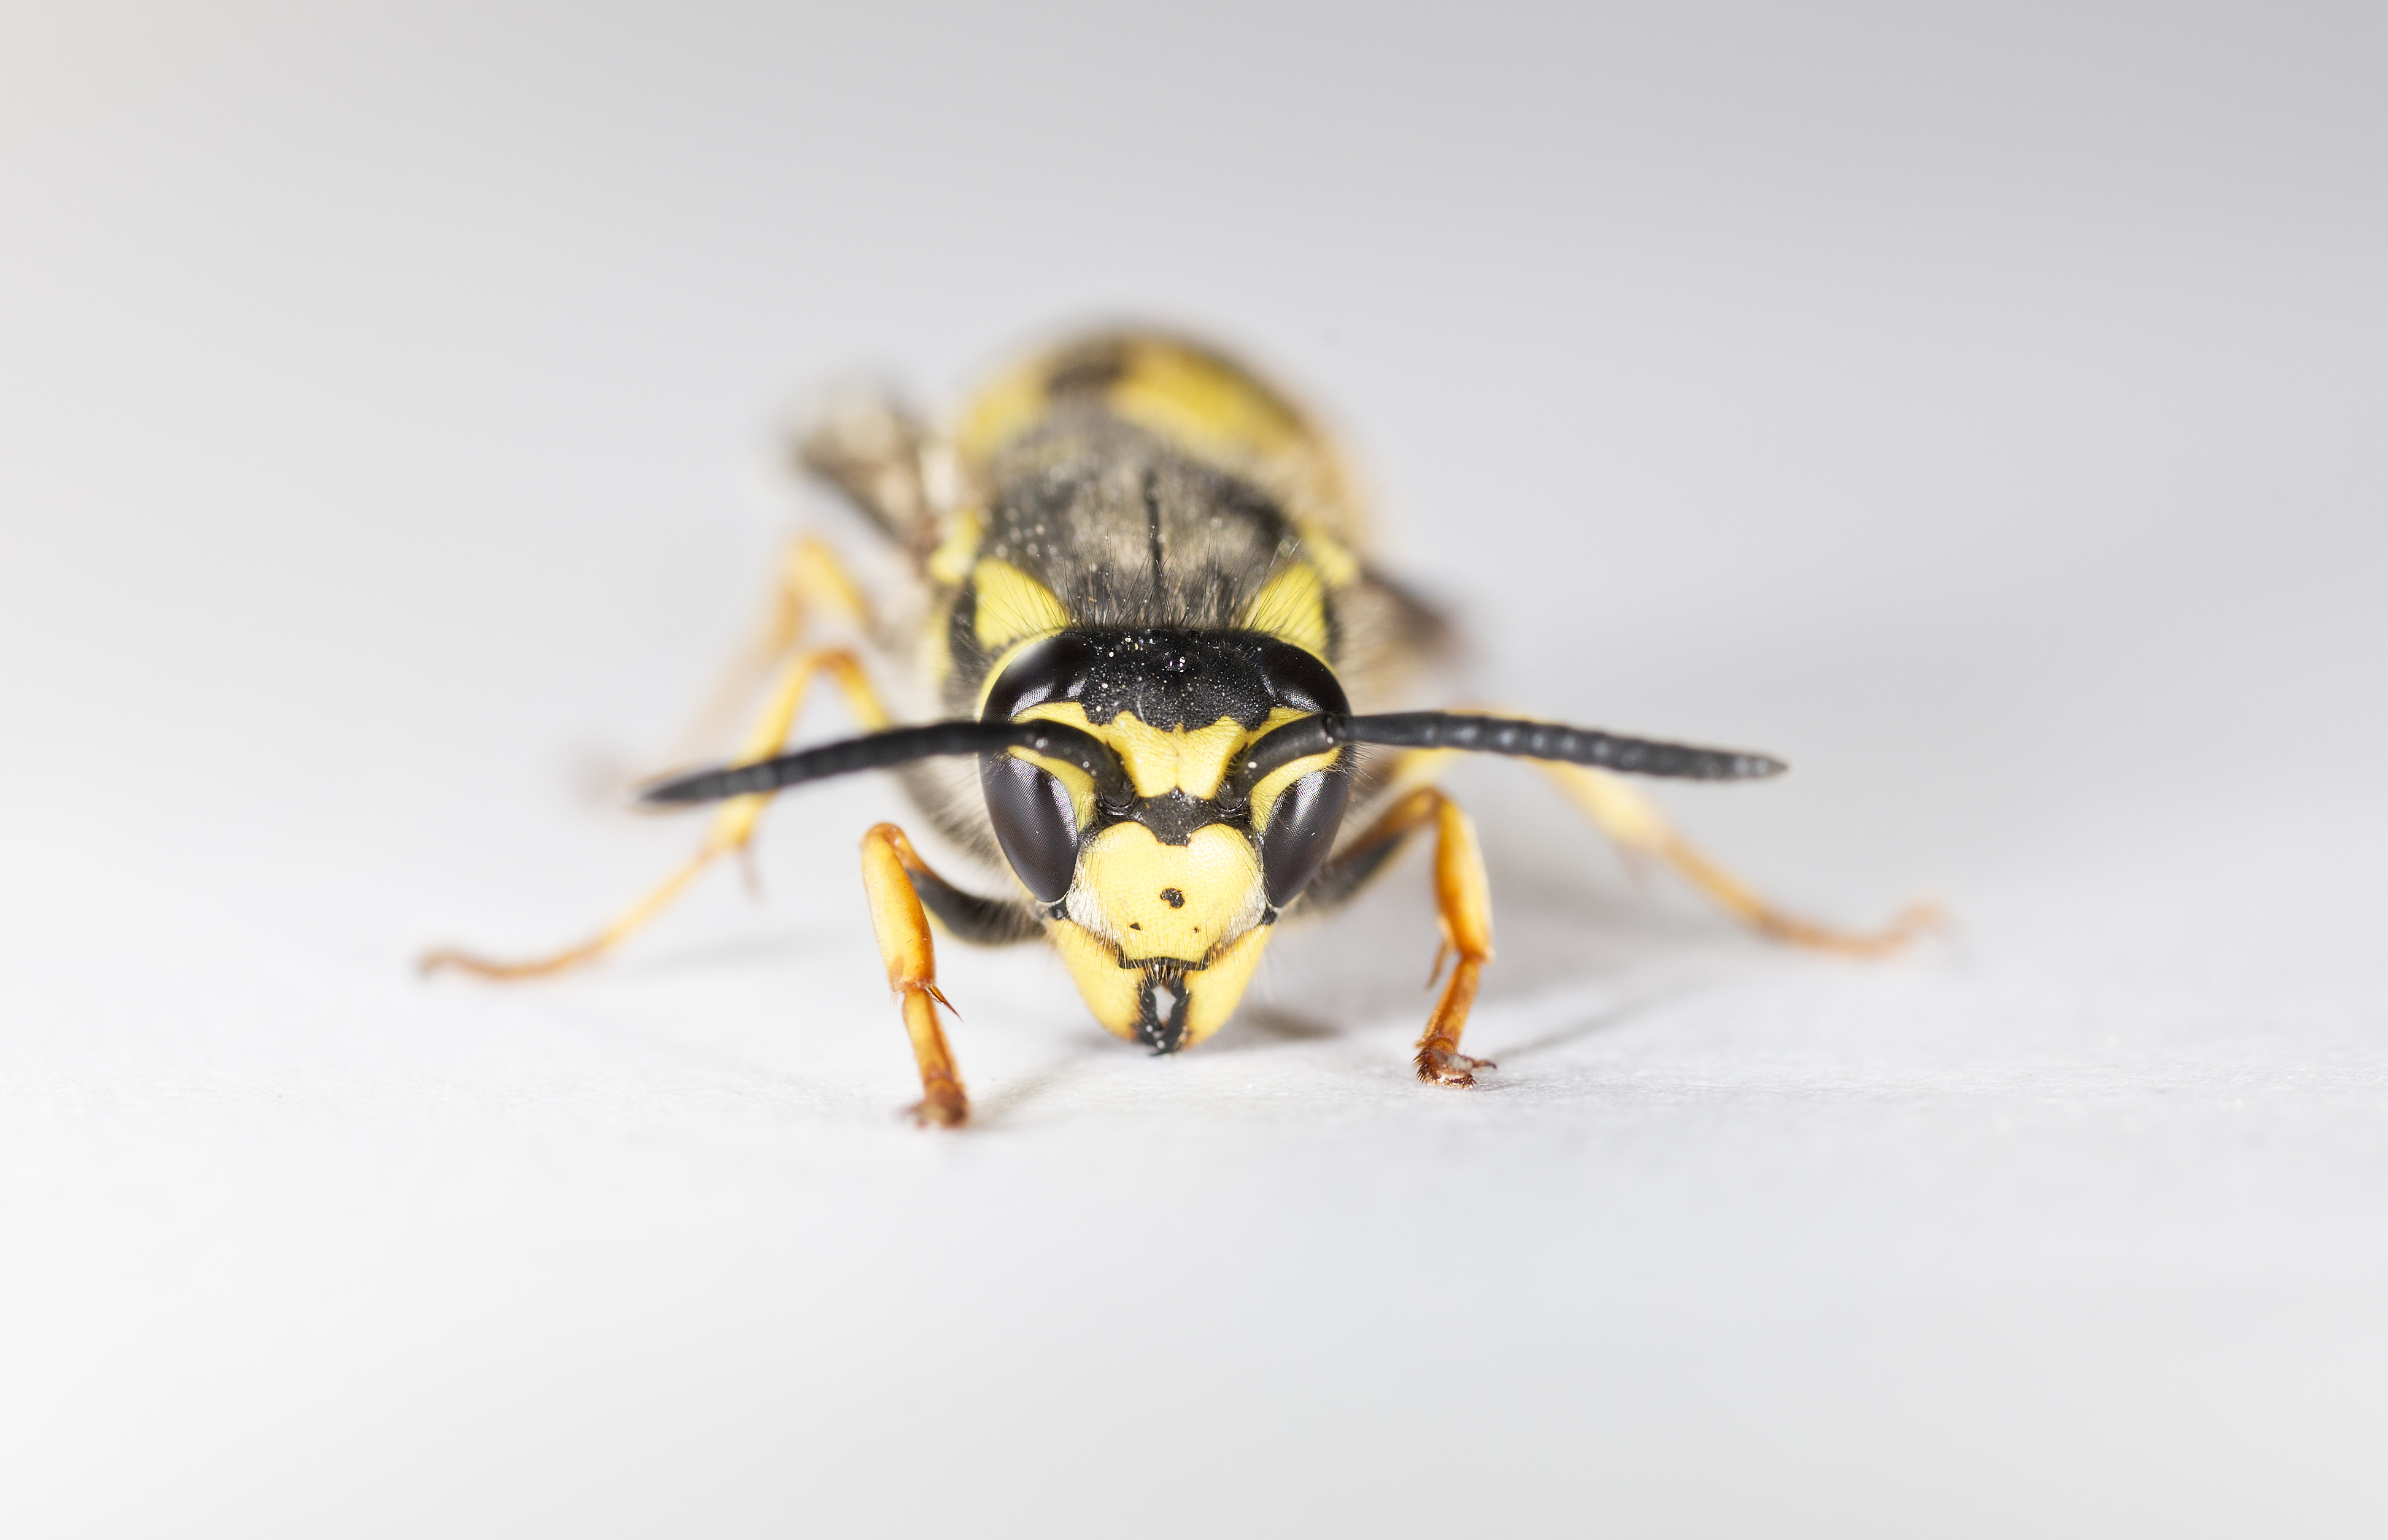 how to get rid of bees wasps and hornets